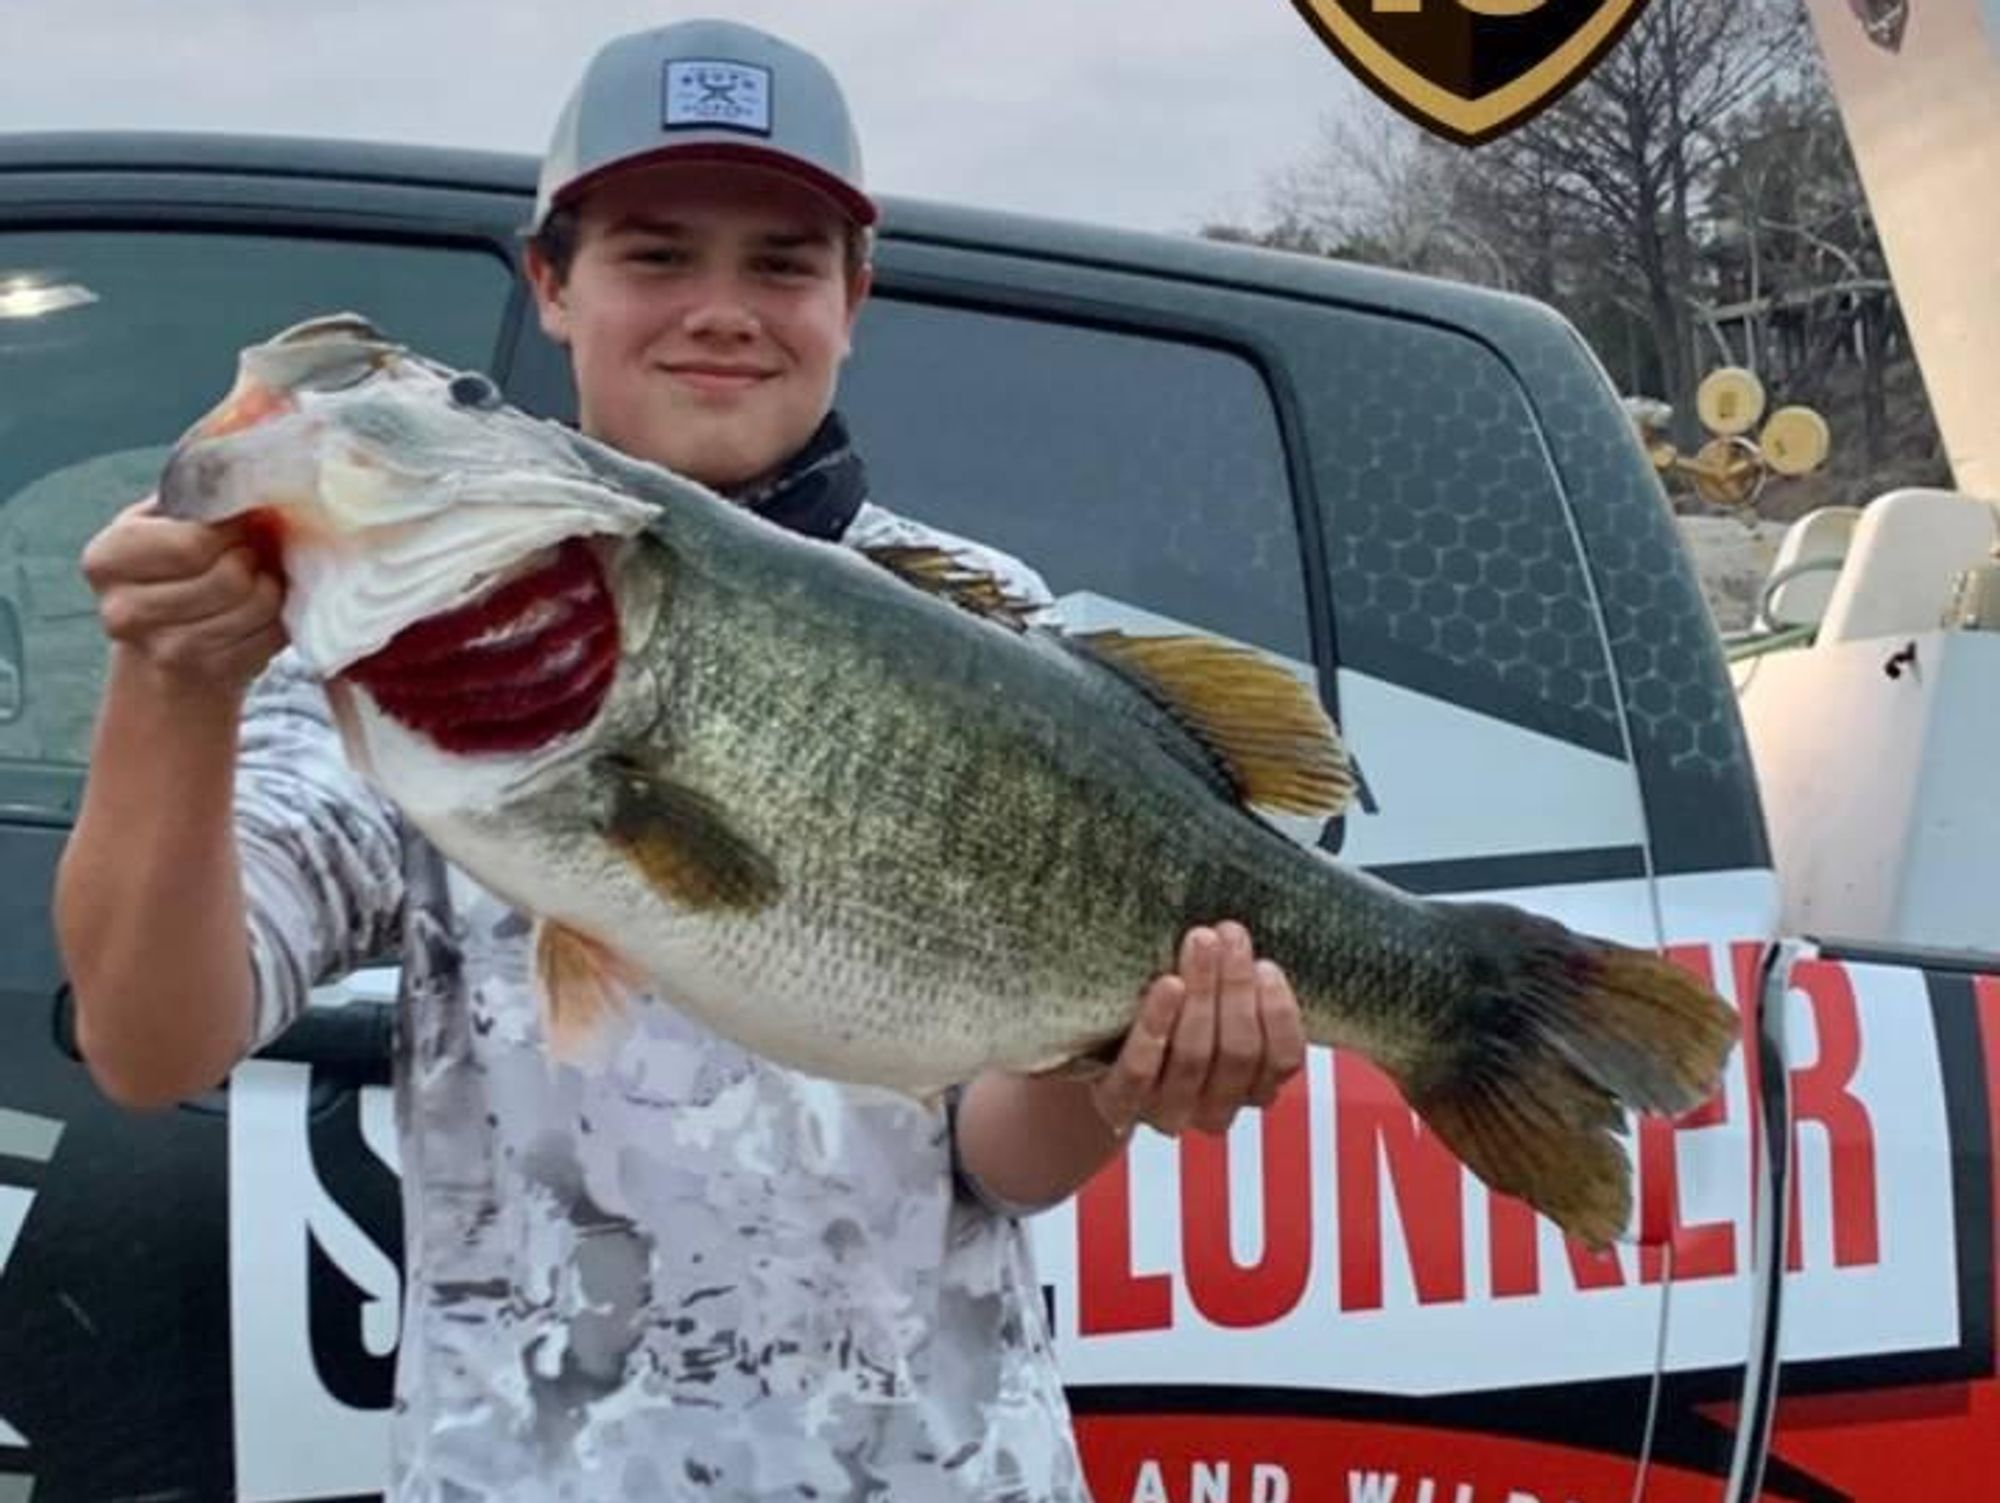 Lake Travis earns 10,000 well-bred bass thanks to record-breaking 15-year-old fisherman